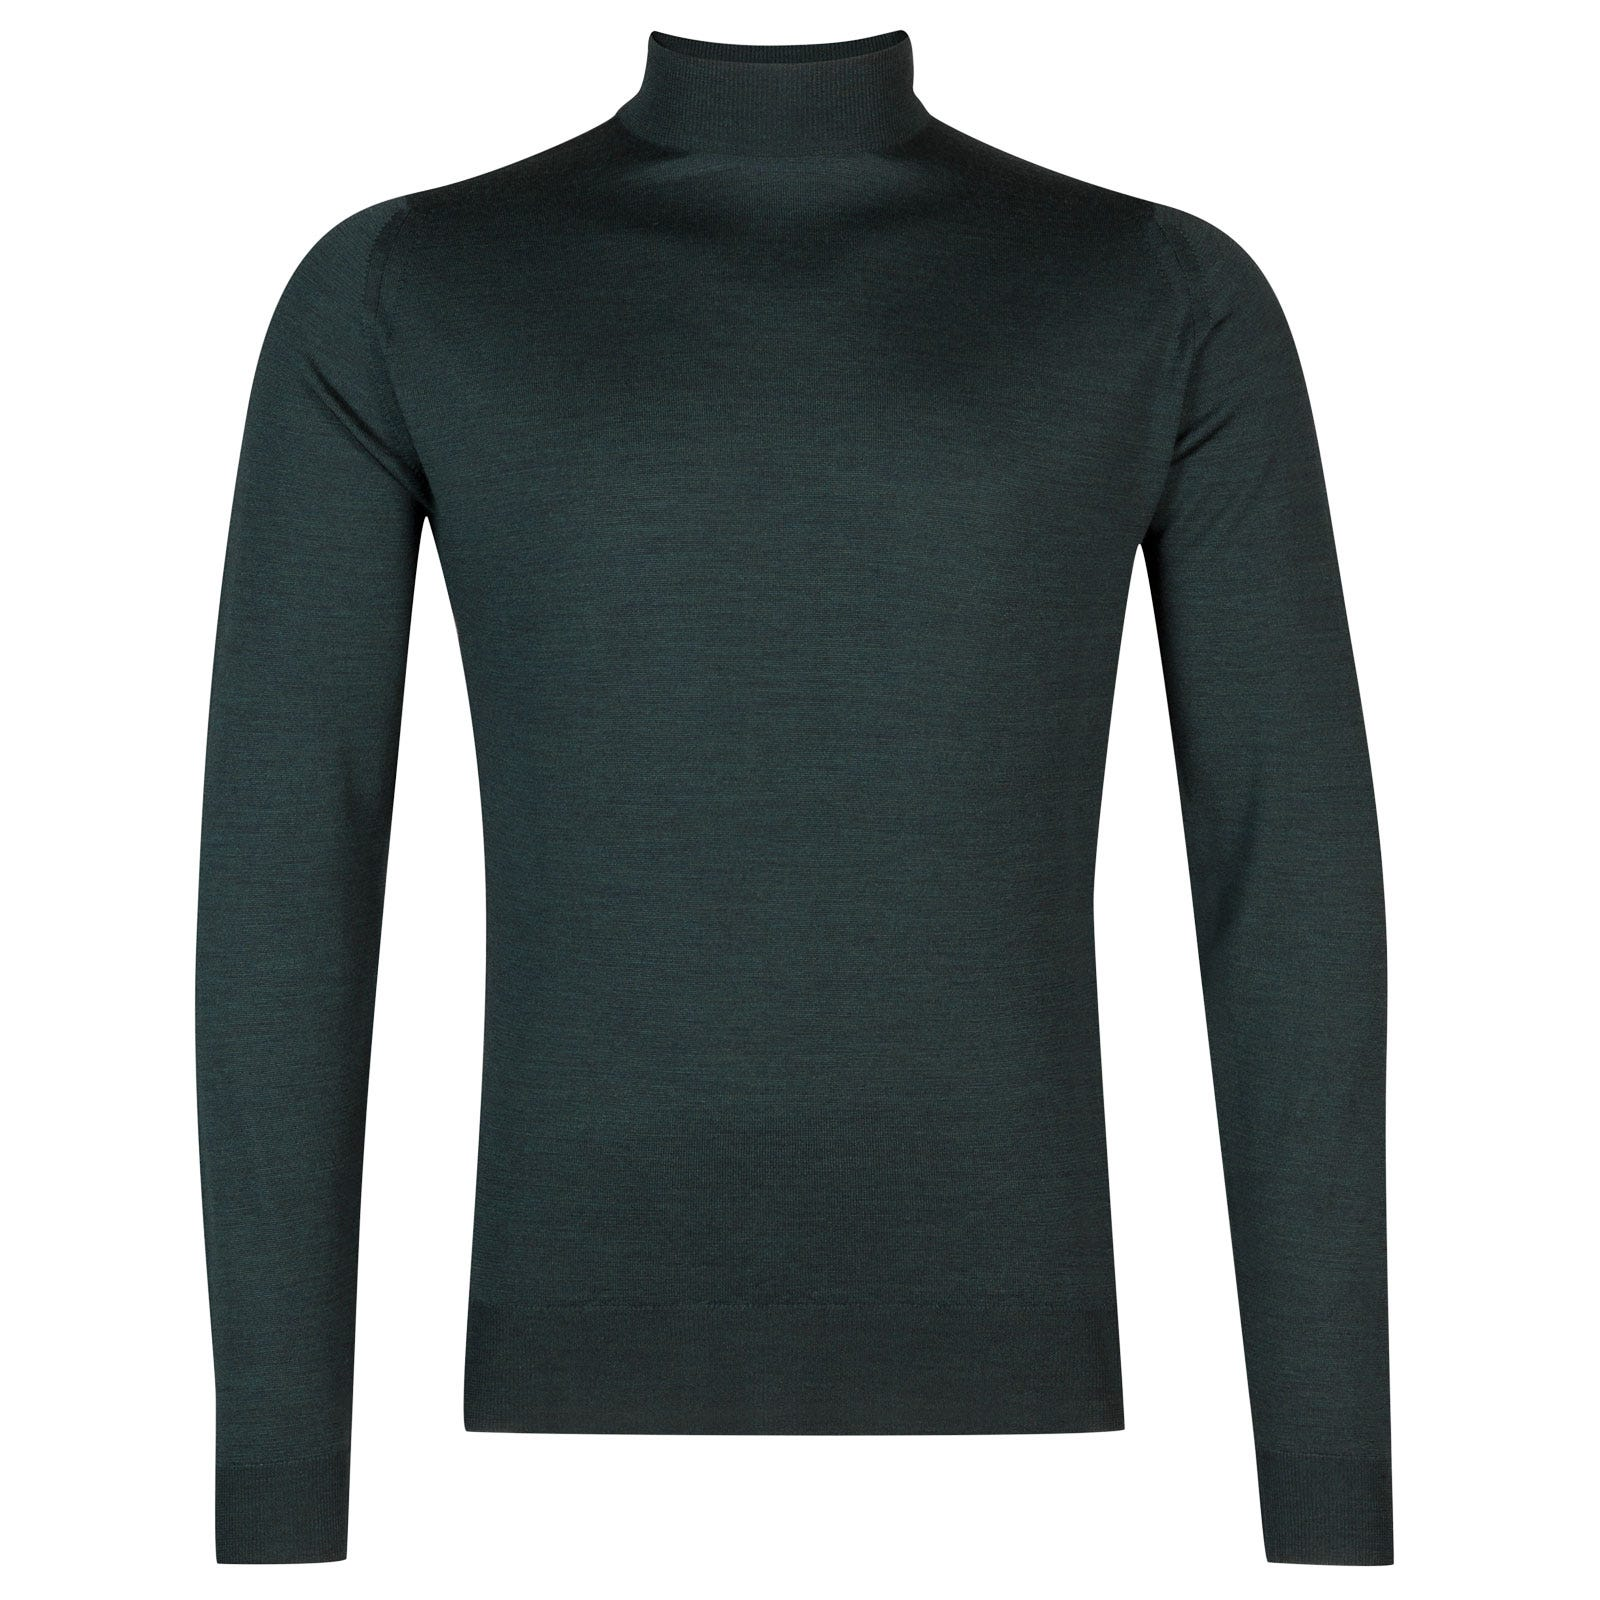 John Smedley harcourt Merino Wool Pullover in Racing Green-L